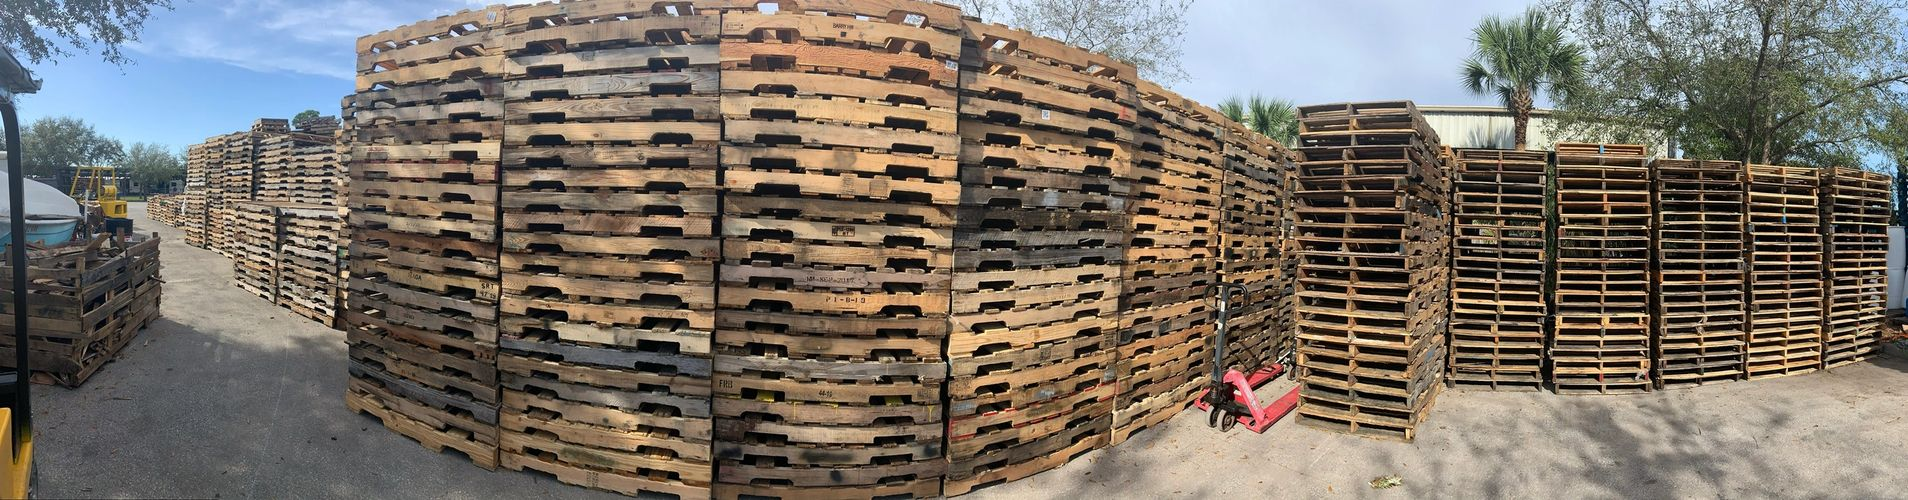 INEX Pallets | Melbourne Florida